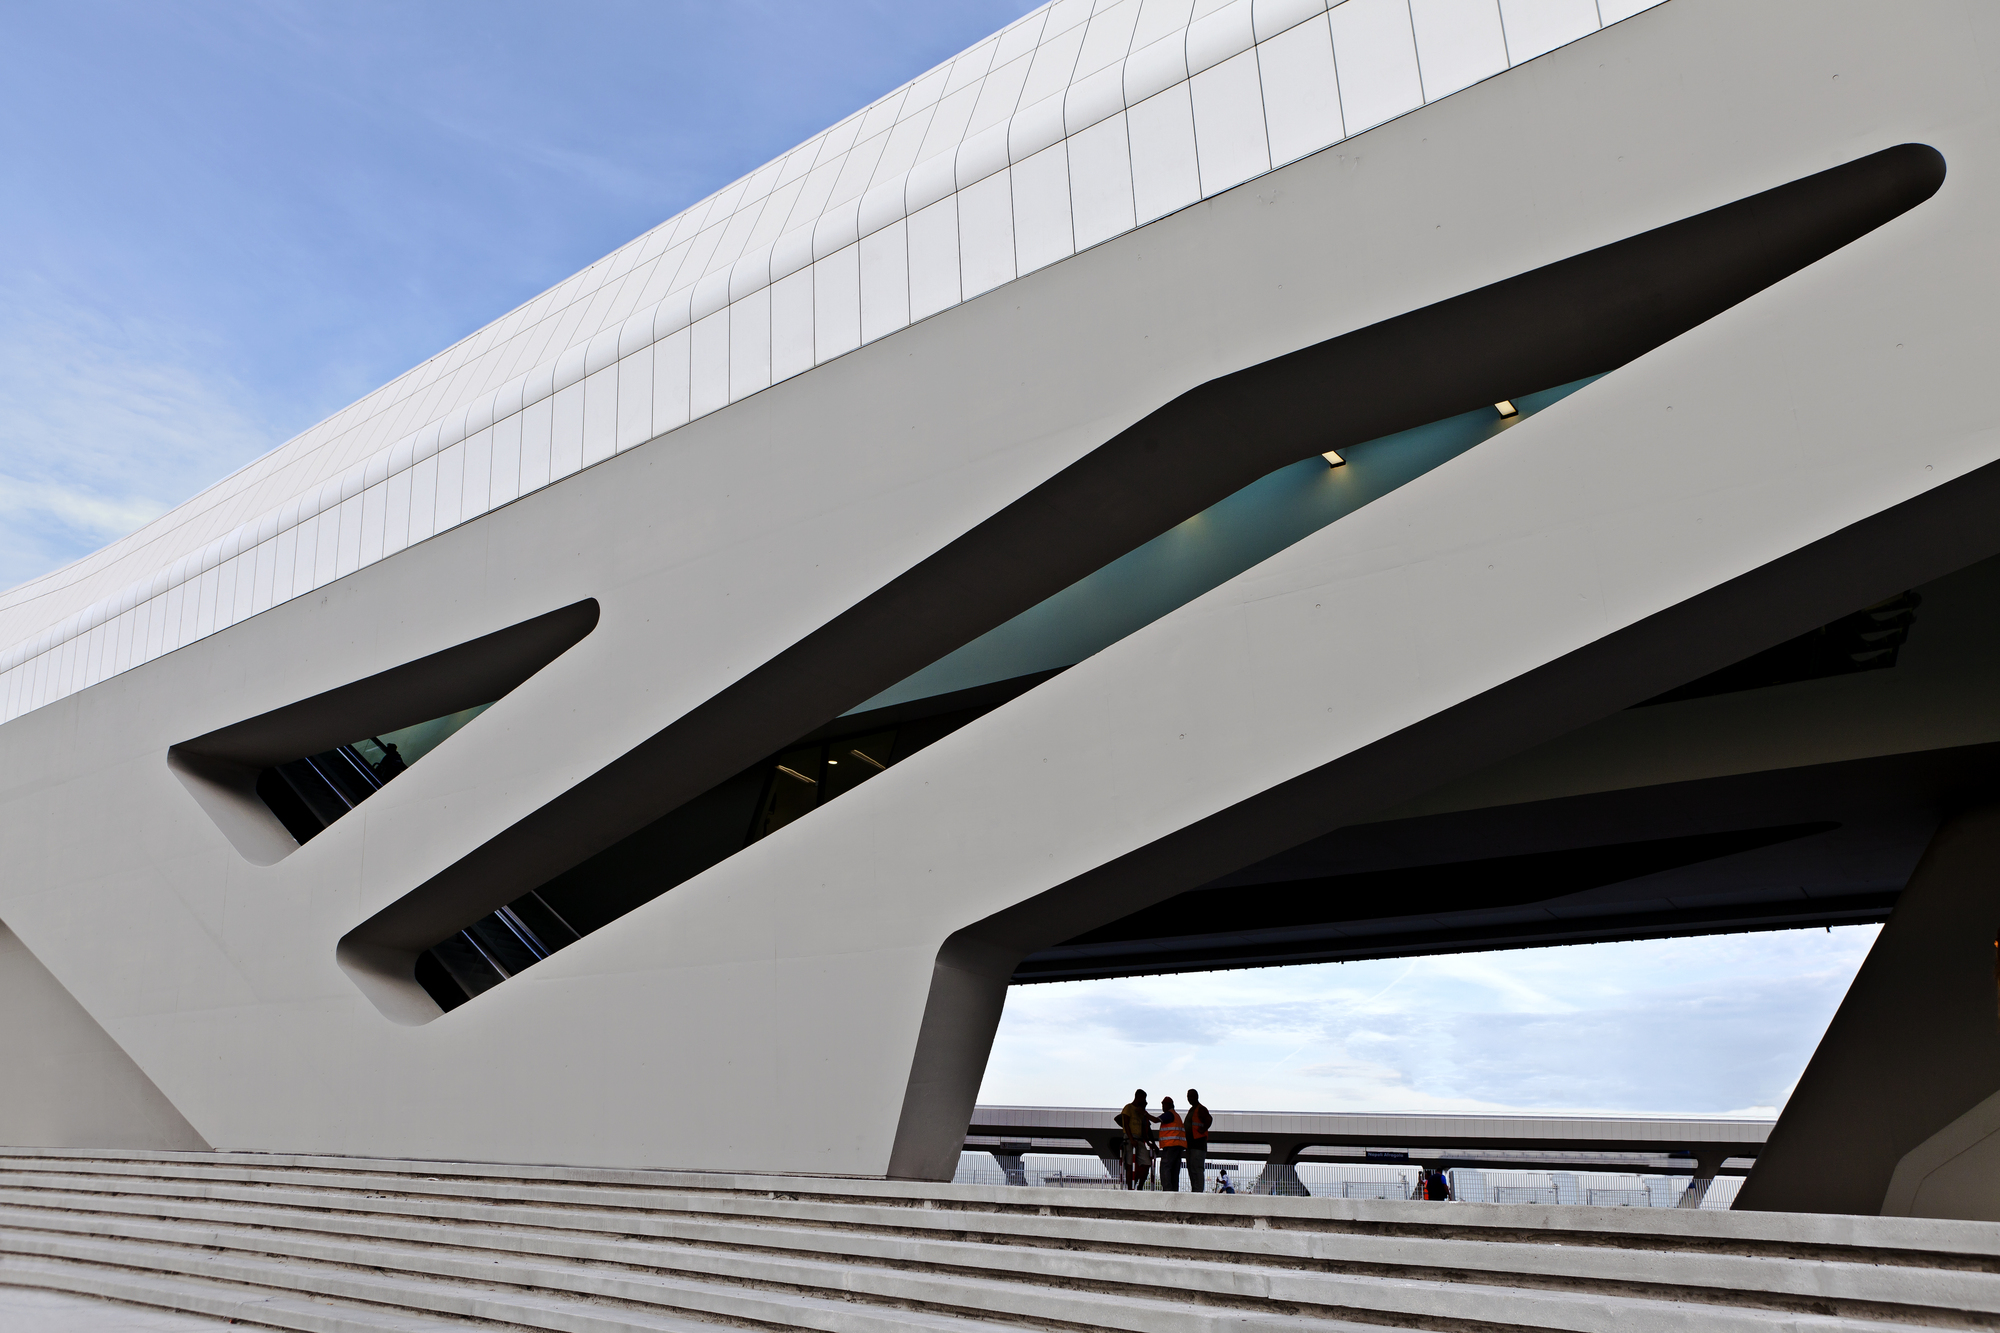 Napoli afragola station phase 1 zaha hadid architects for Architecture 00